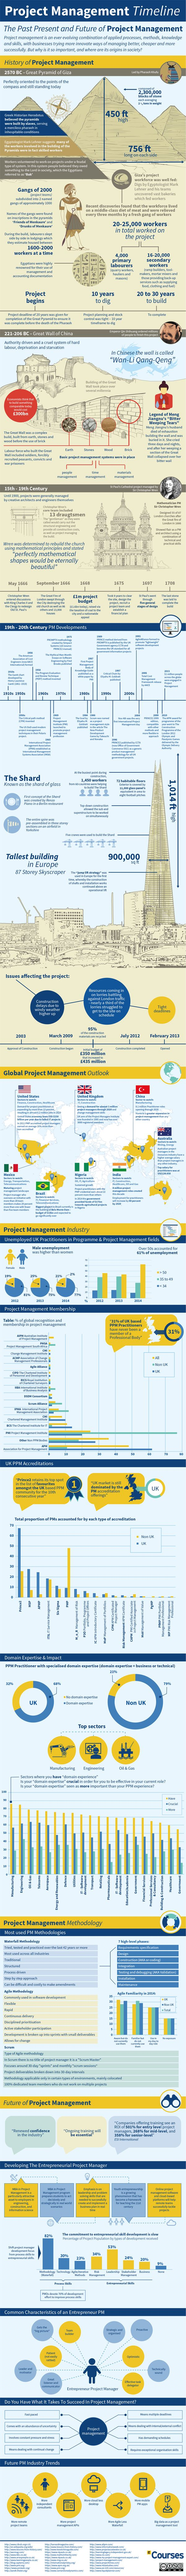 infographic project management timeline past present and future